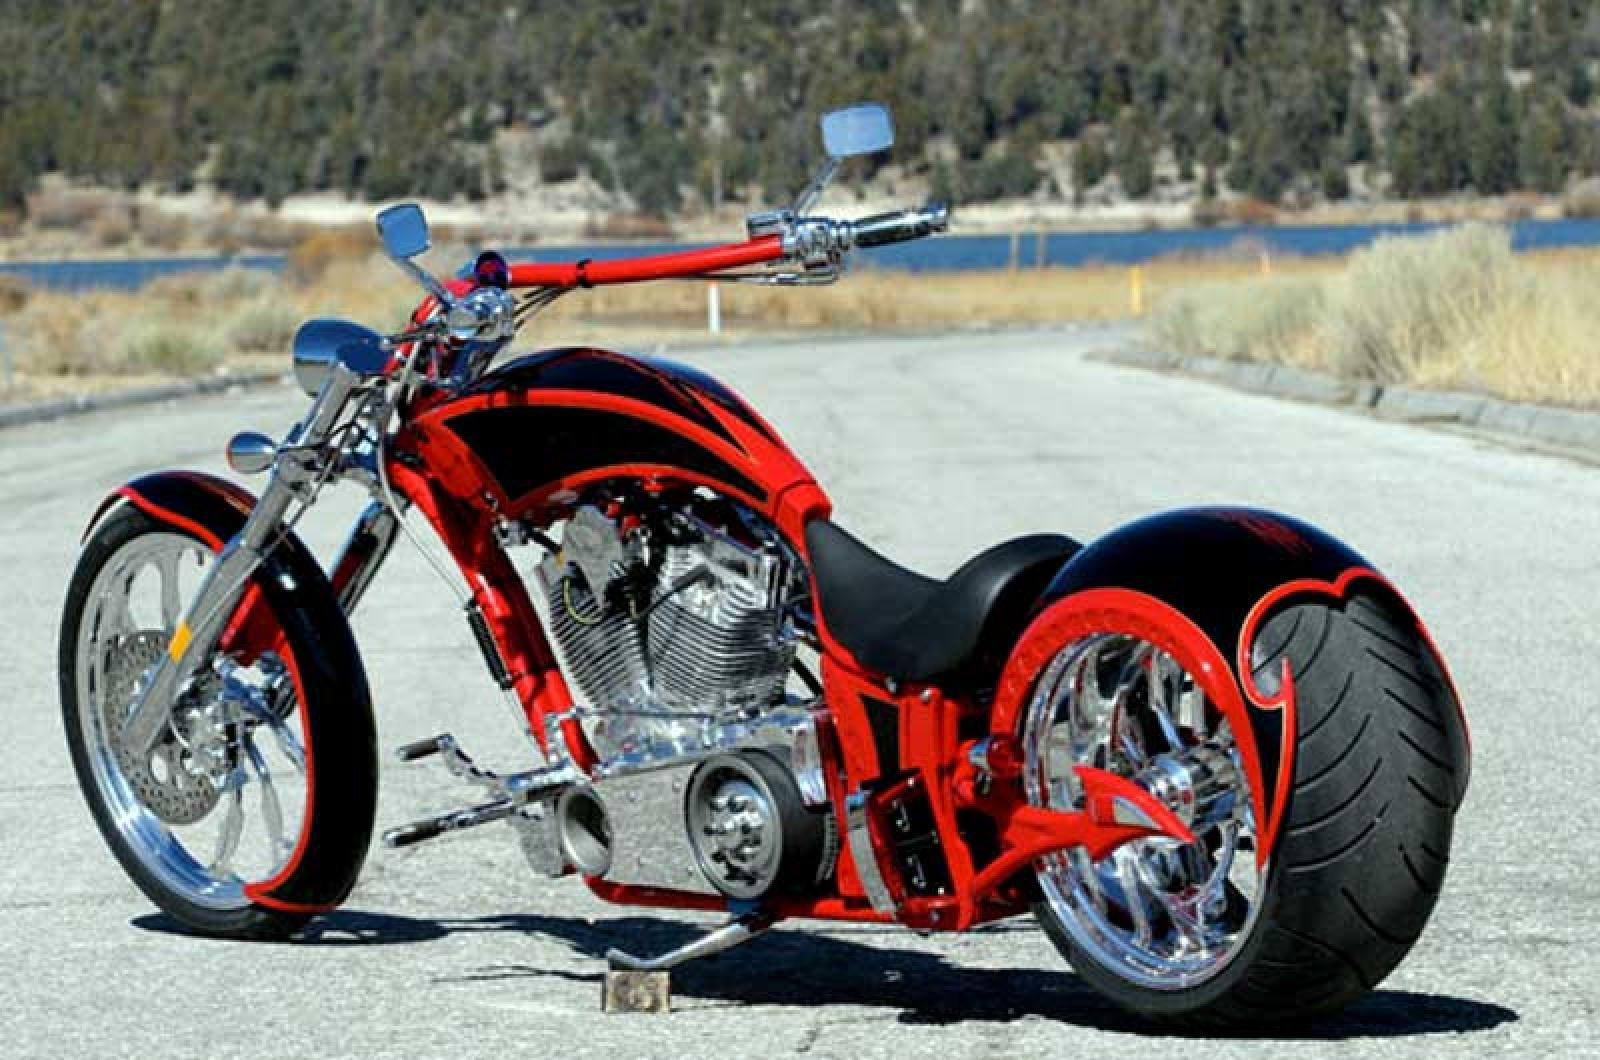 Big Bear Choppers Screamin Demon 100 Carb 2010 images #63543